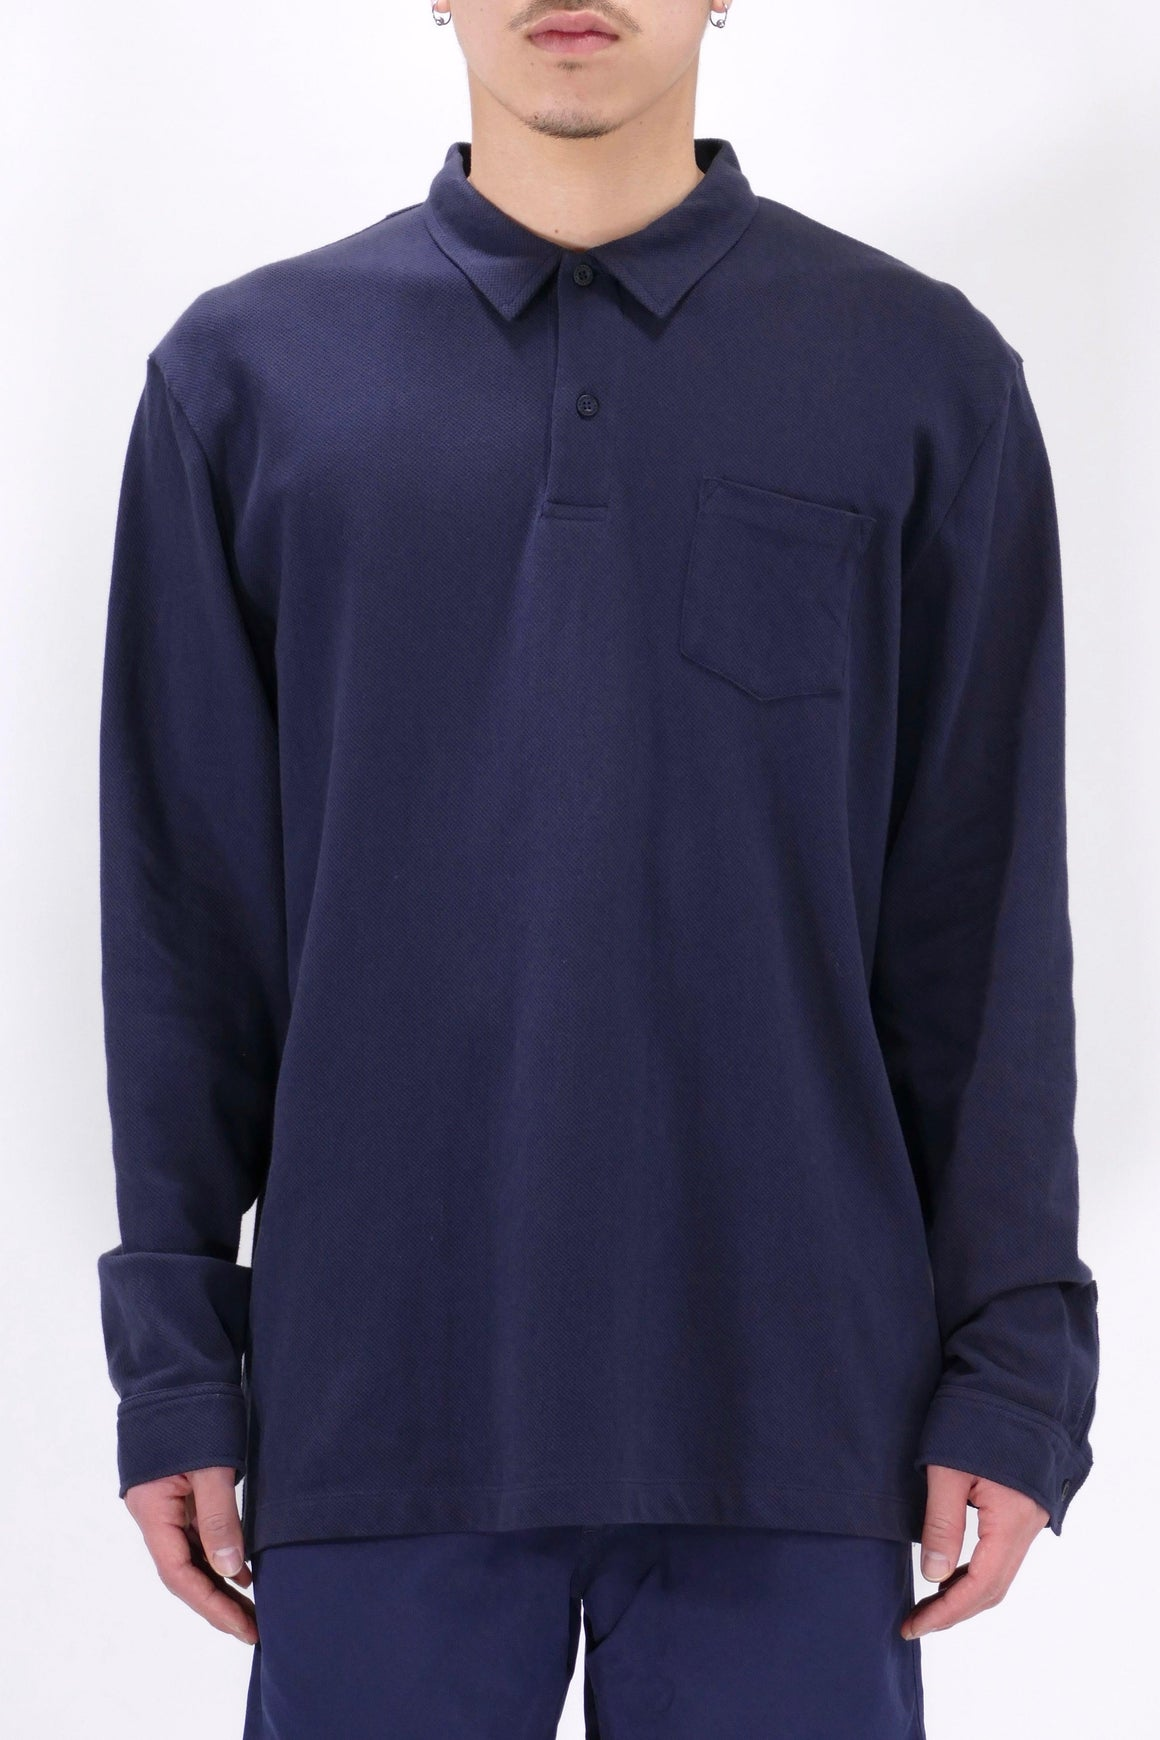 Sunspel LS Riviera Polo Navy